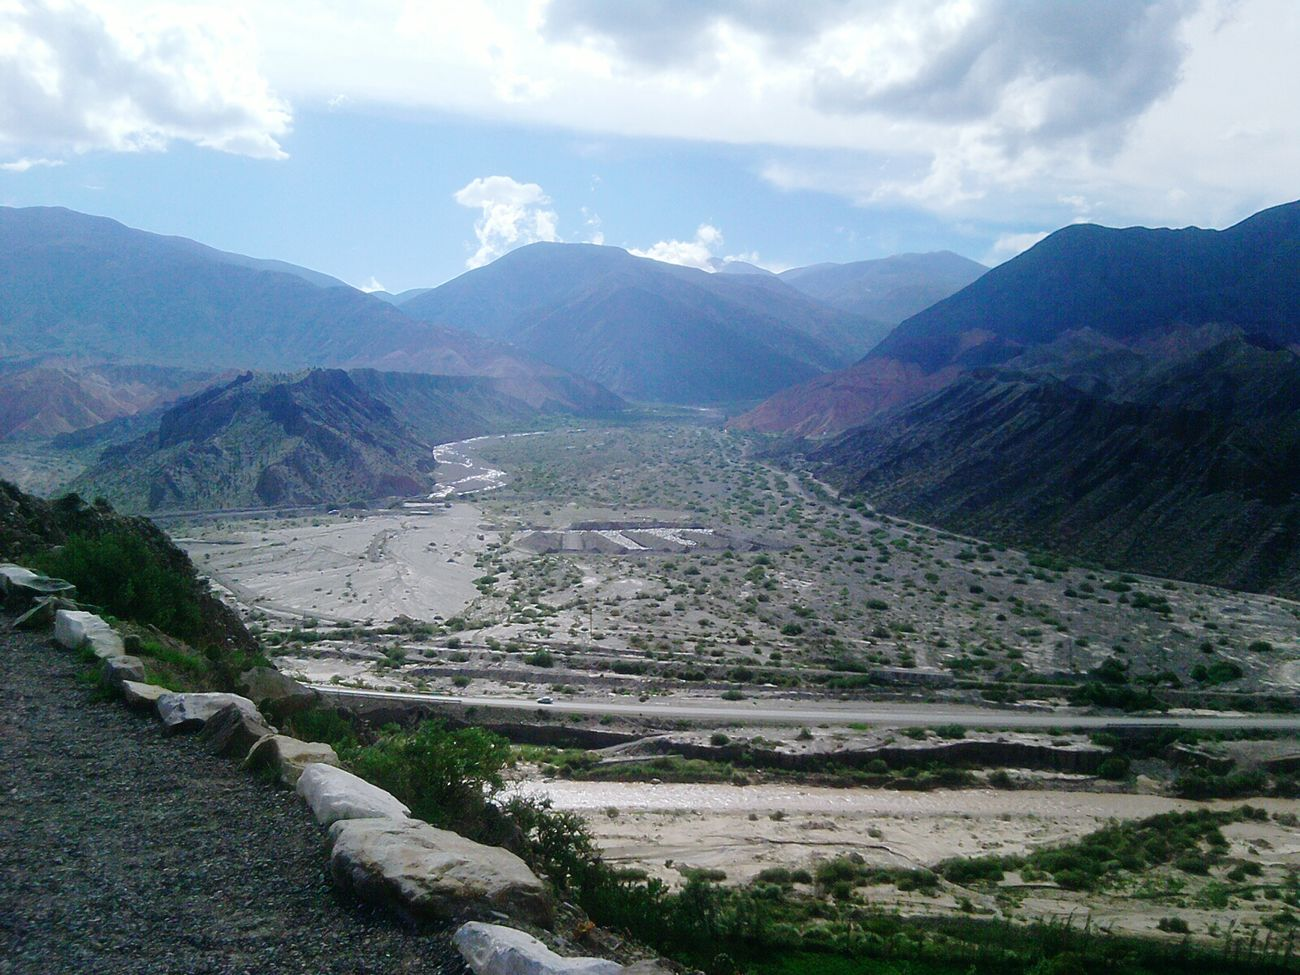 Landscape_photography Landscape Tilcara Jujuy Relaxing Montains